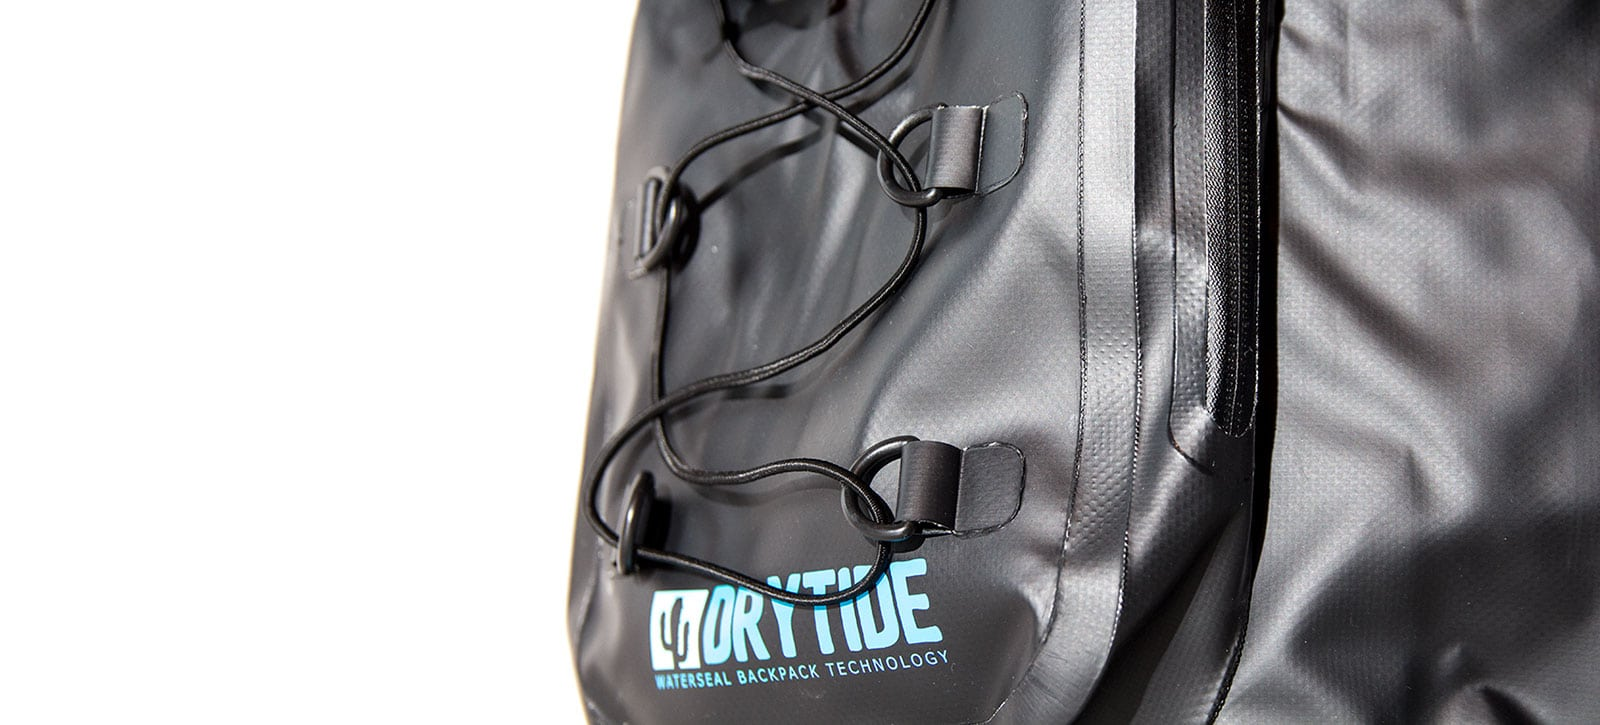 waterproof-back-pocket-with-straps